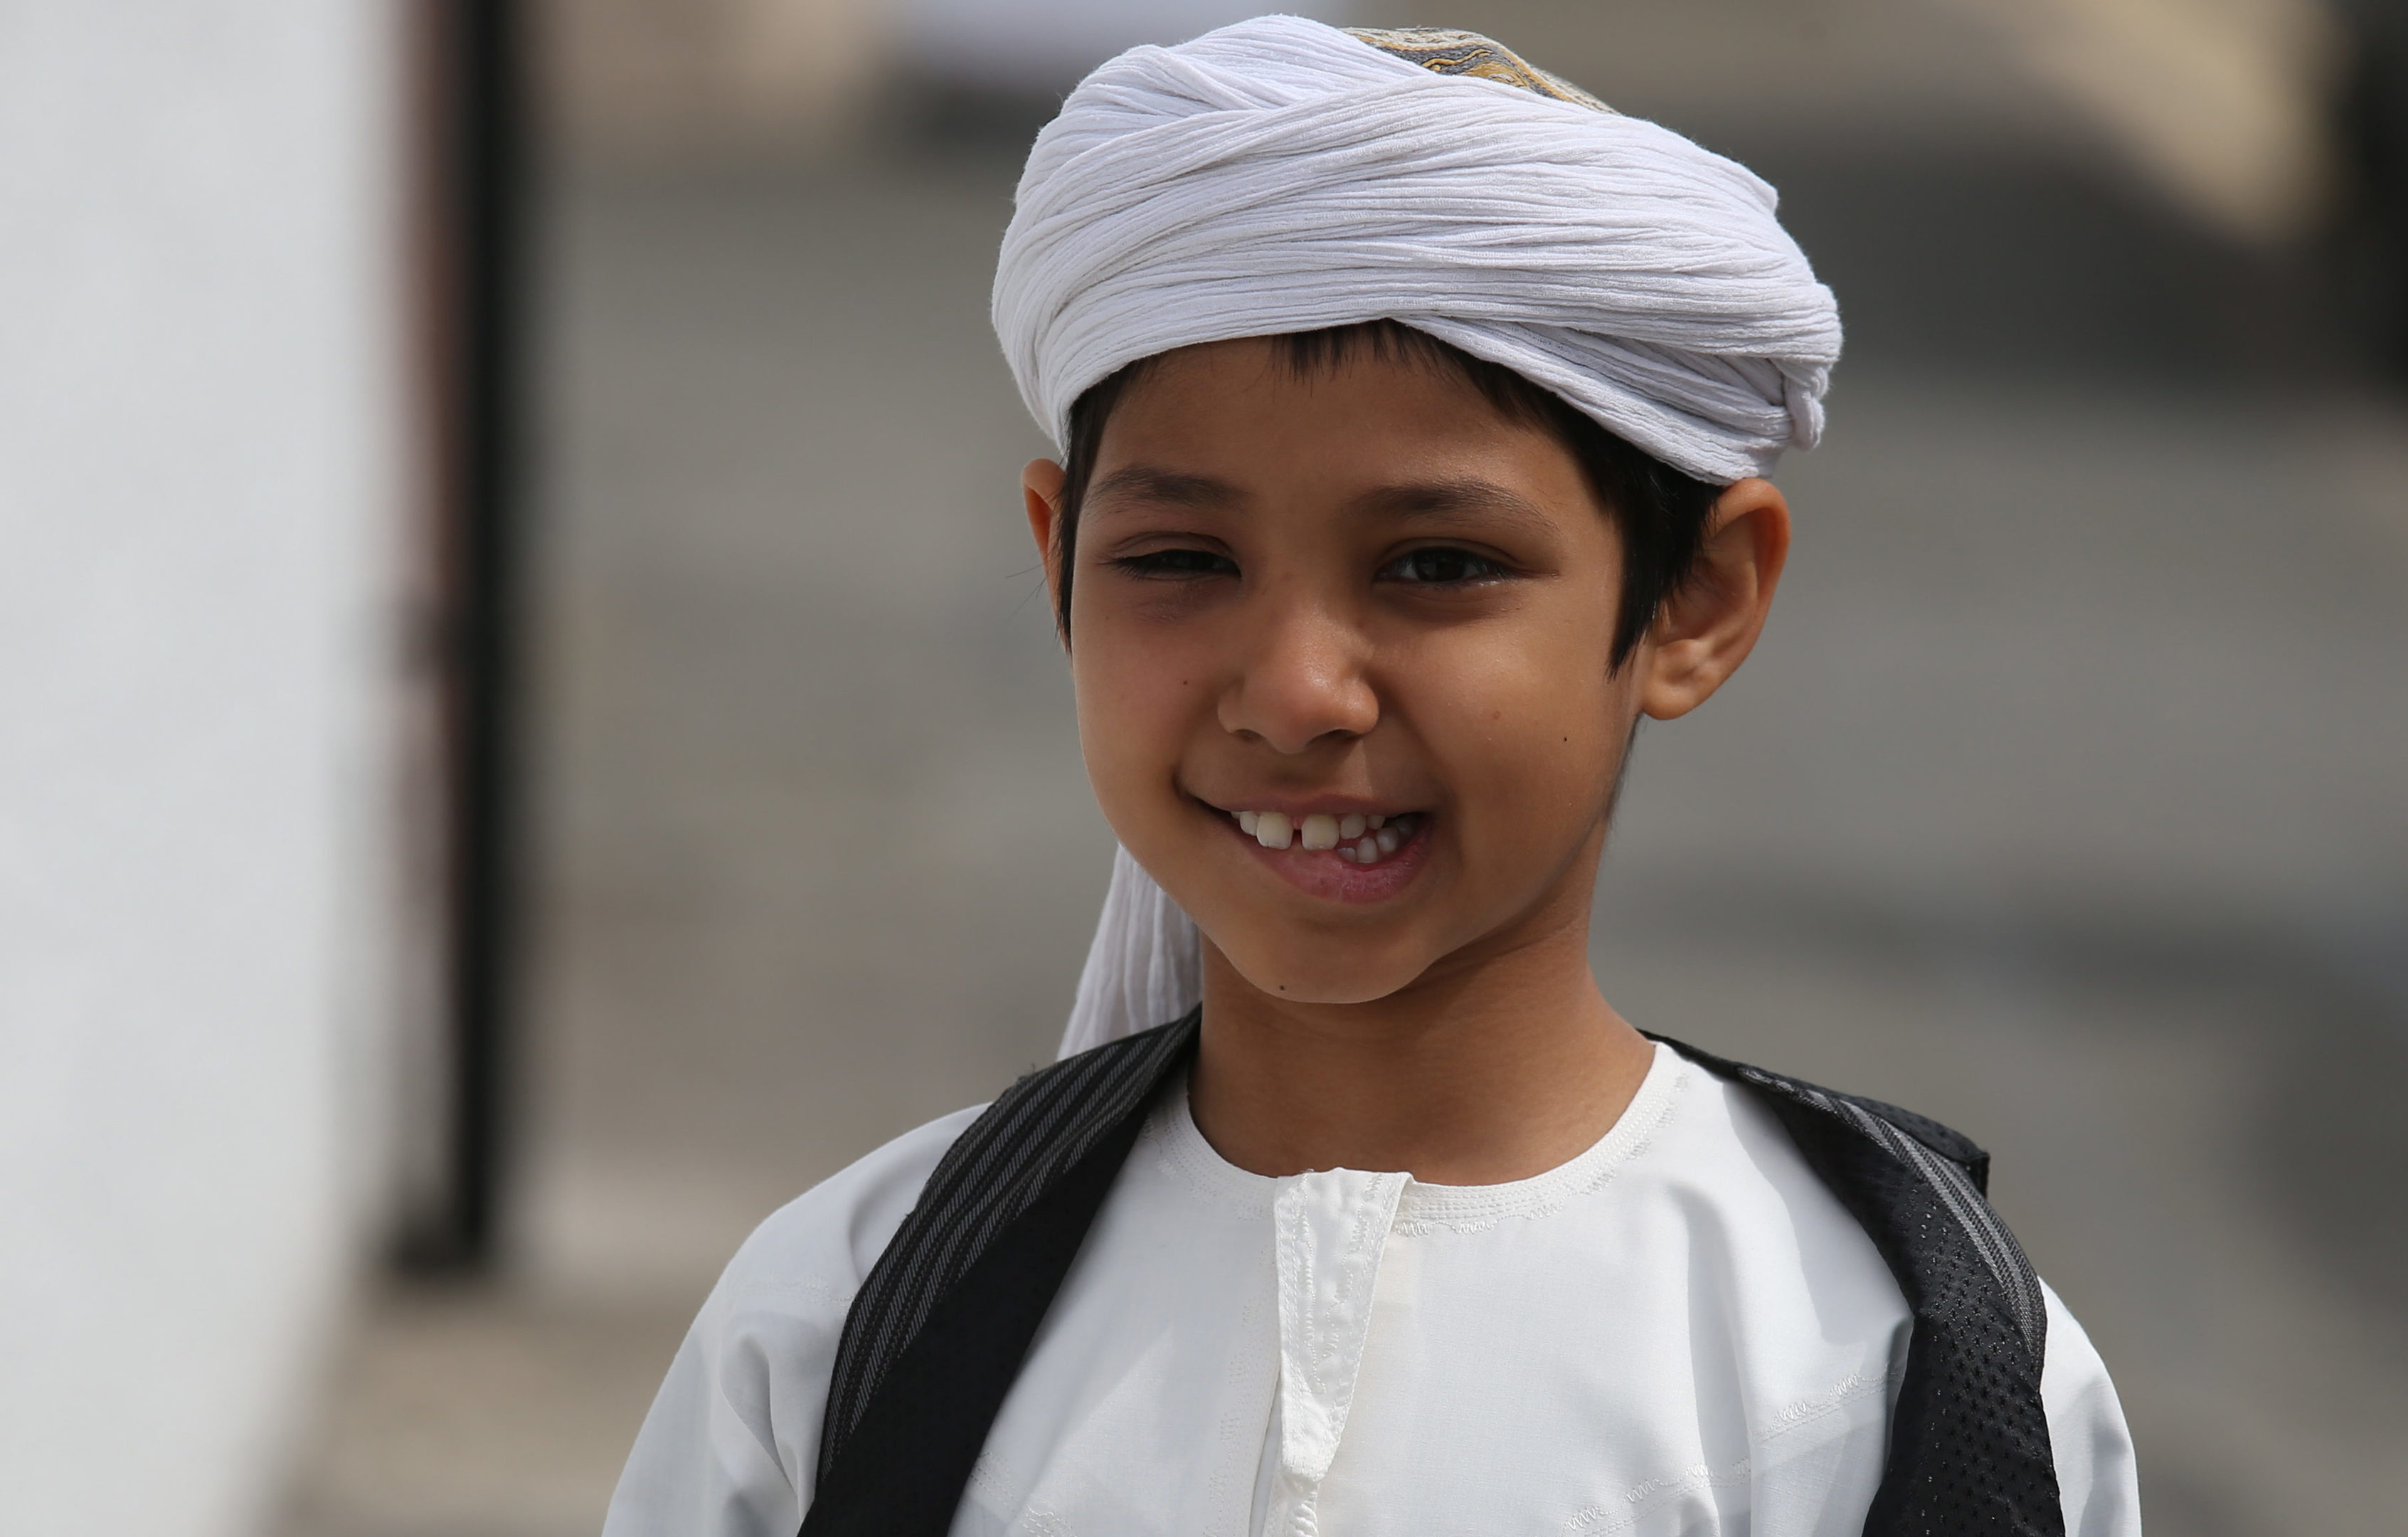 A young member of the Muslim community in Stornoway attends the official opening of the first mosque in the Outer Hebrides (Andrew Milligan/PA Wire)